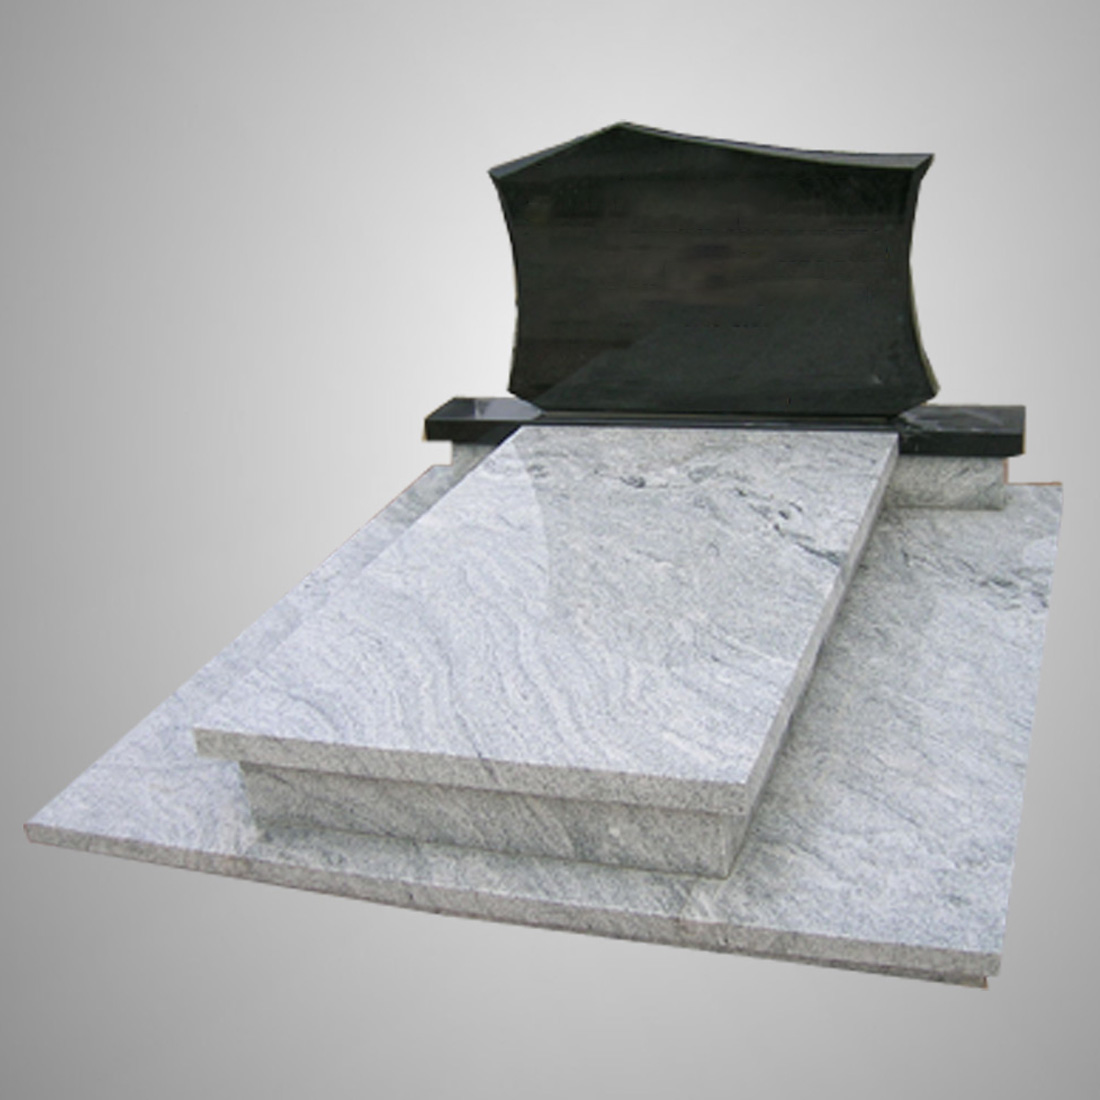 Modern Customized Headstones and Monuments